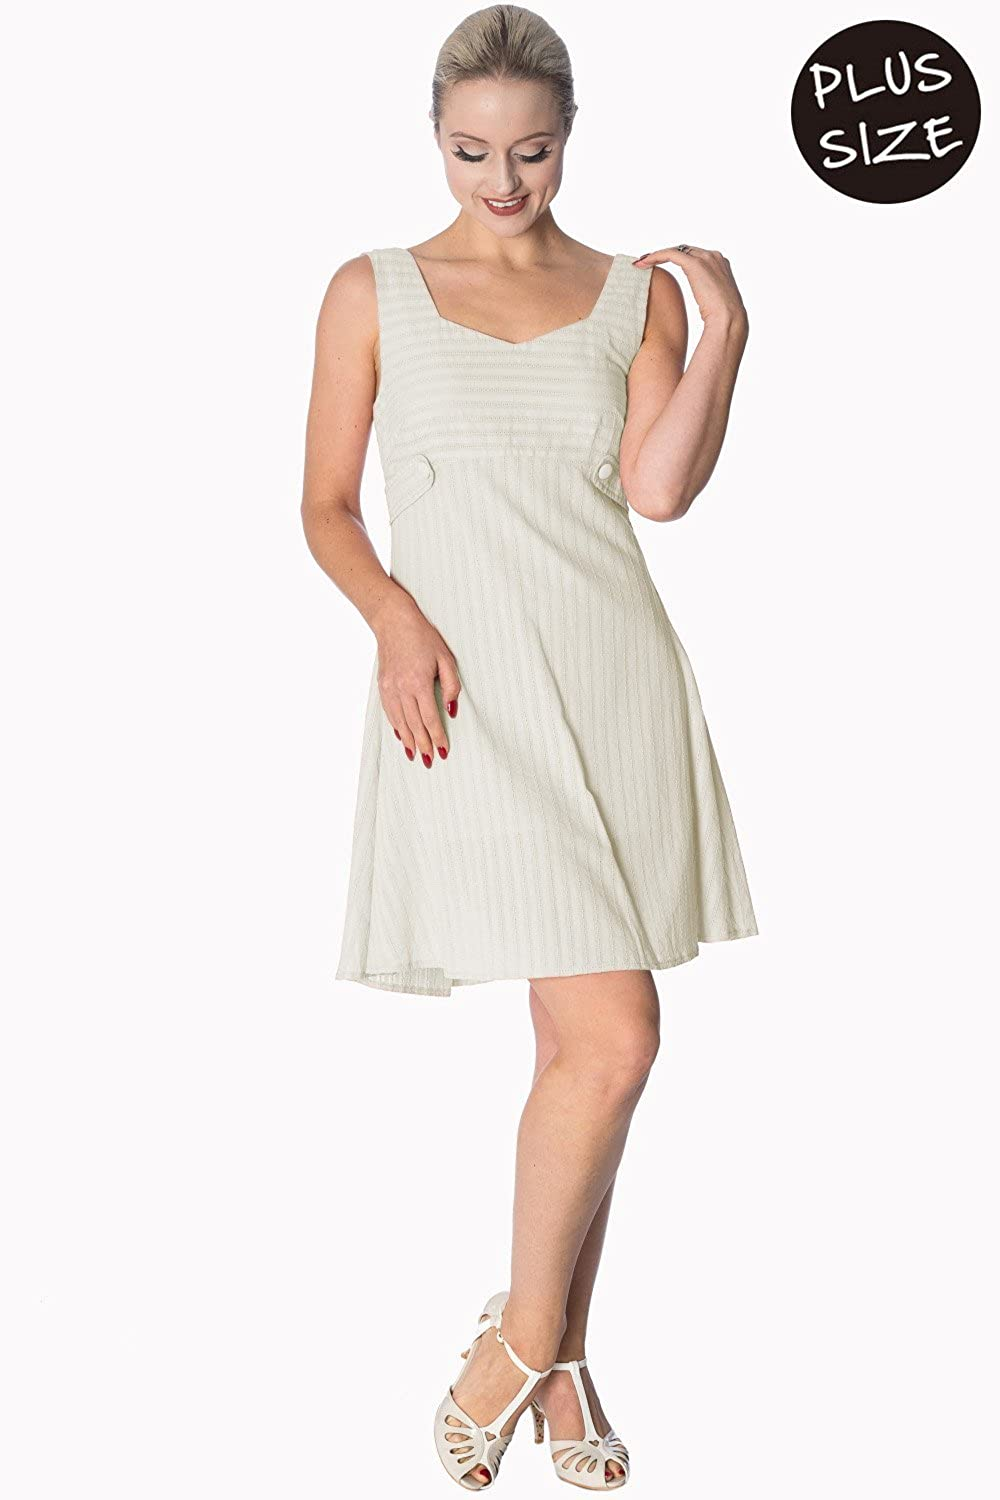 0310ca531d9d2 Banned Apparel - Make A Wish Tabs Dress Plus Size 4XL / OffWhite at Amazon  Women's Clothing store: